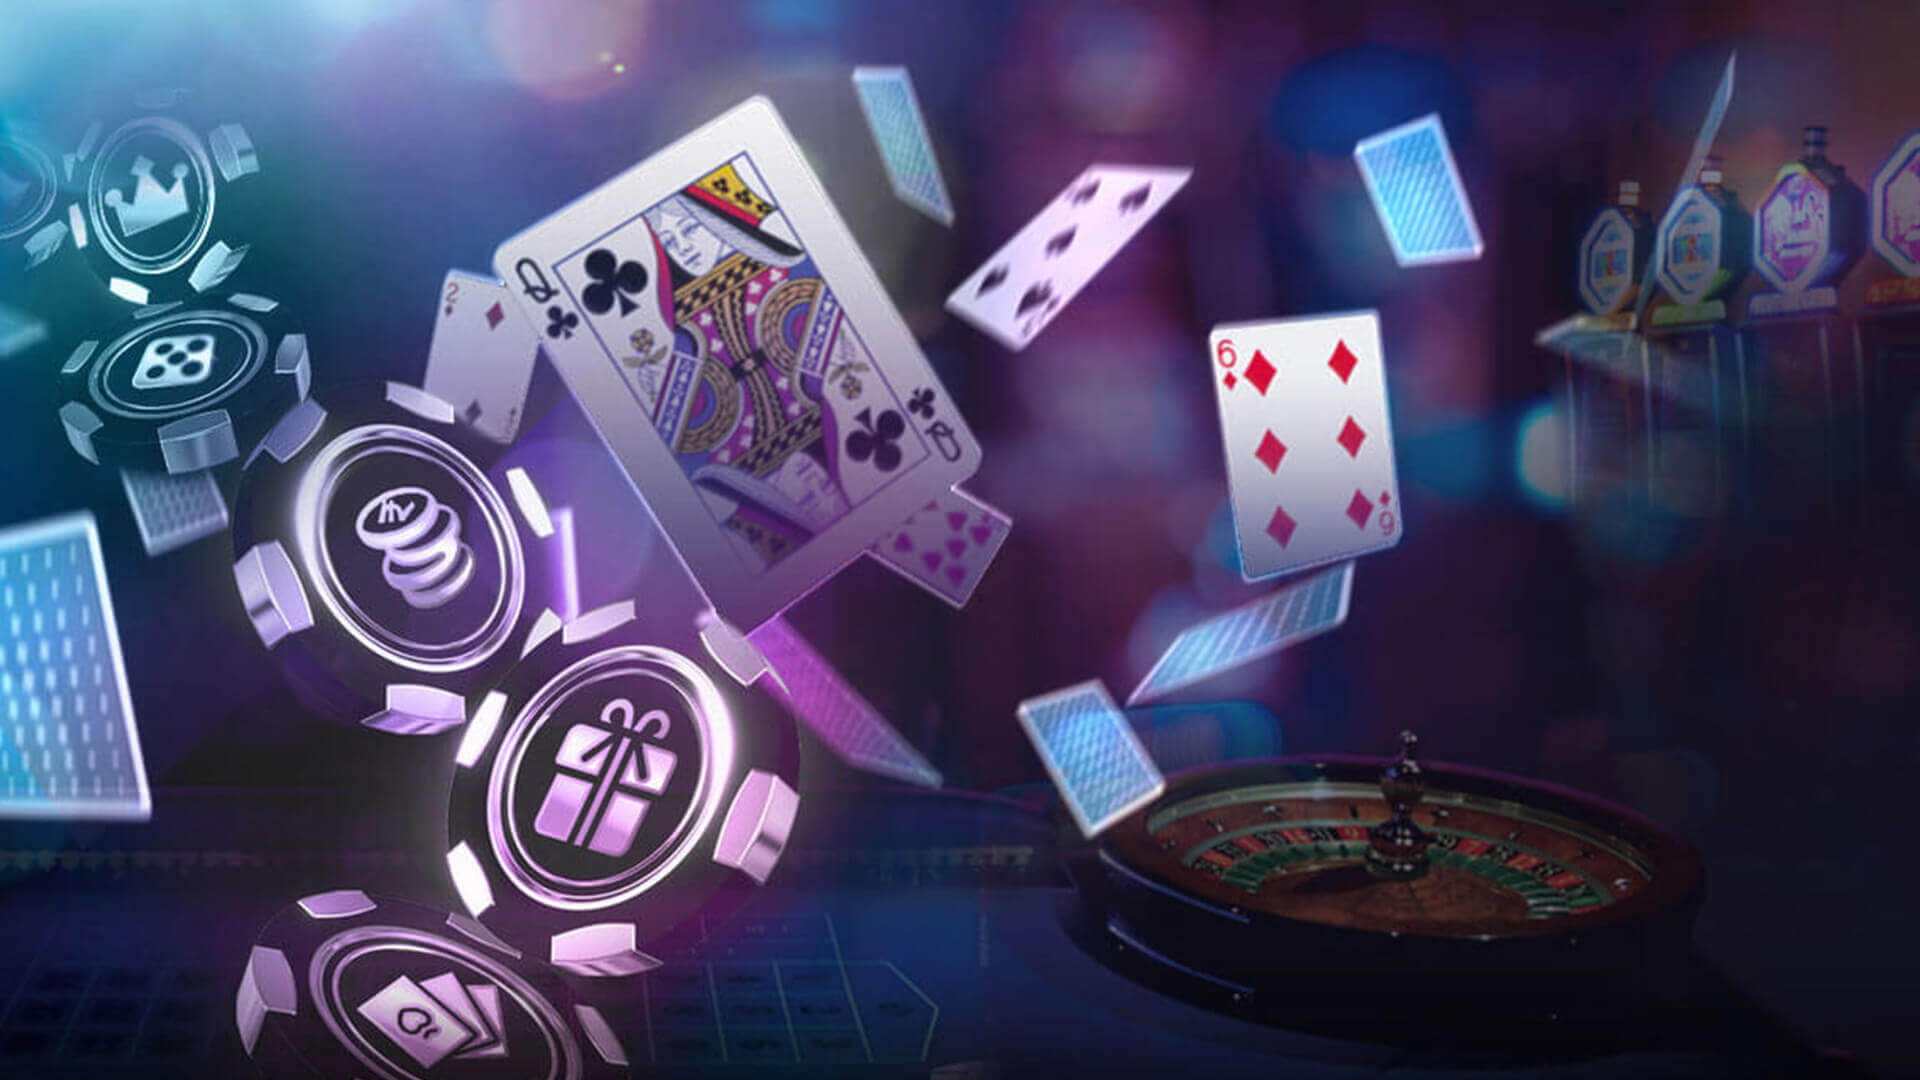 In 15 Minutes, I Will Give You The Truth About Online Casino